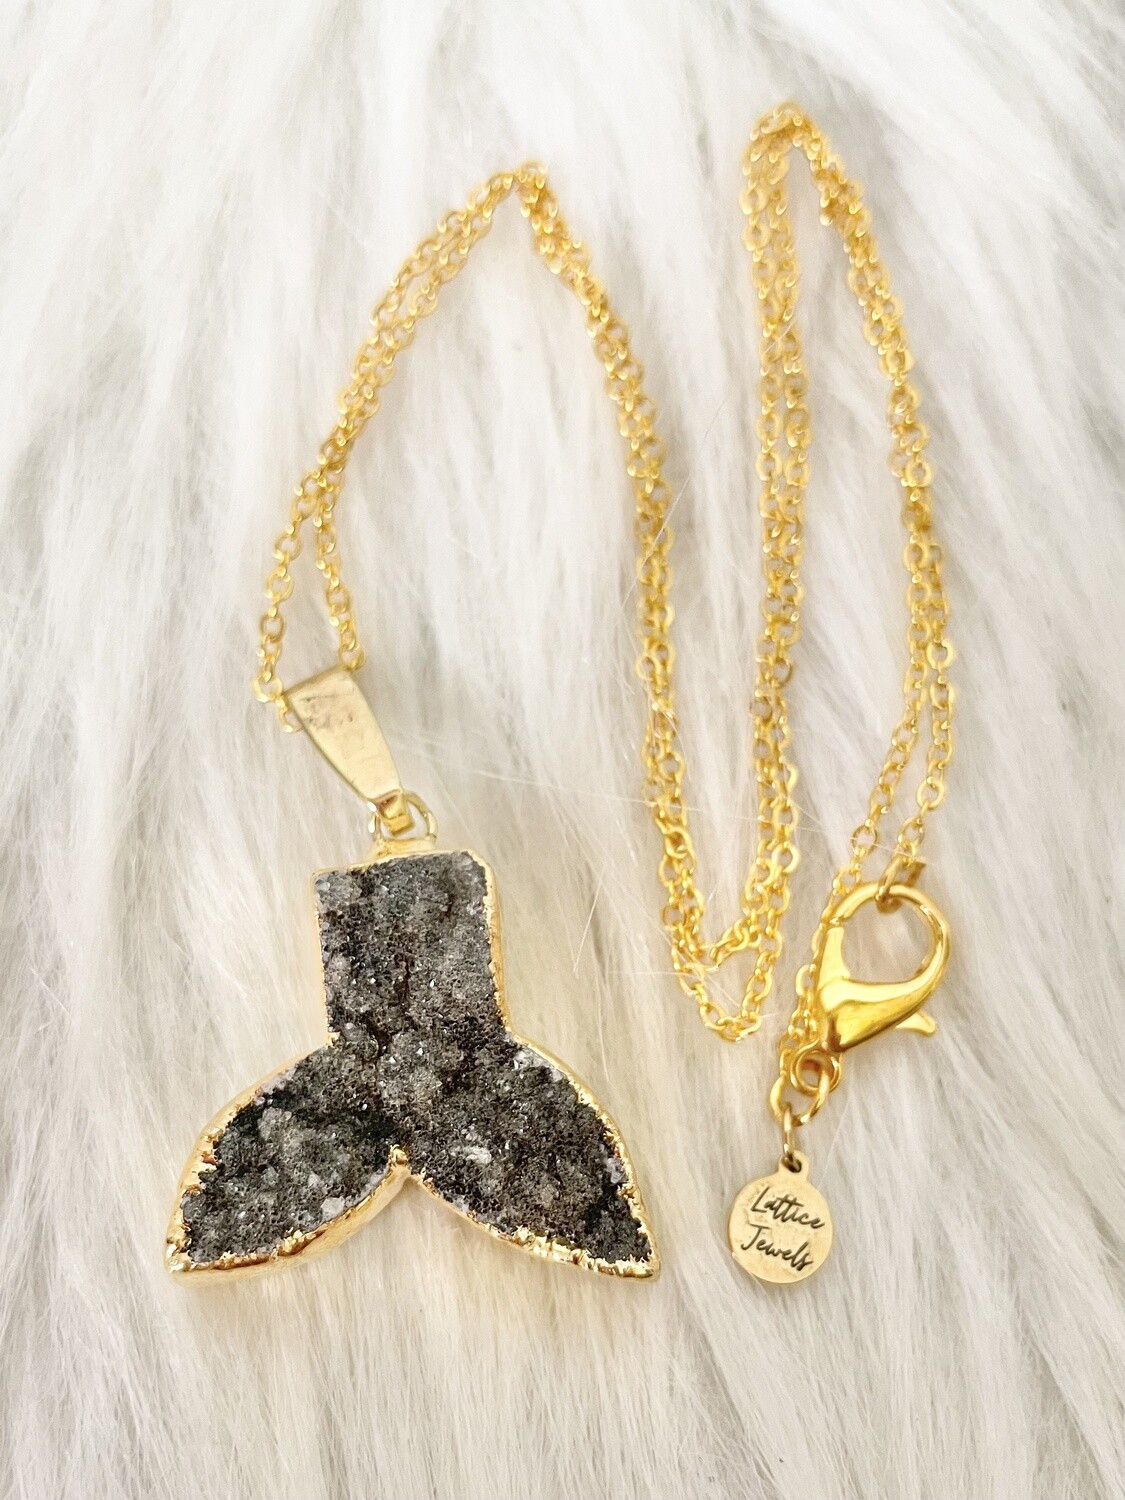 Mermaid Memories Gold Plated Necklace